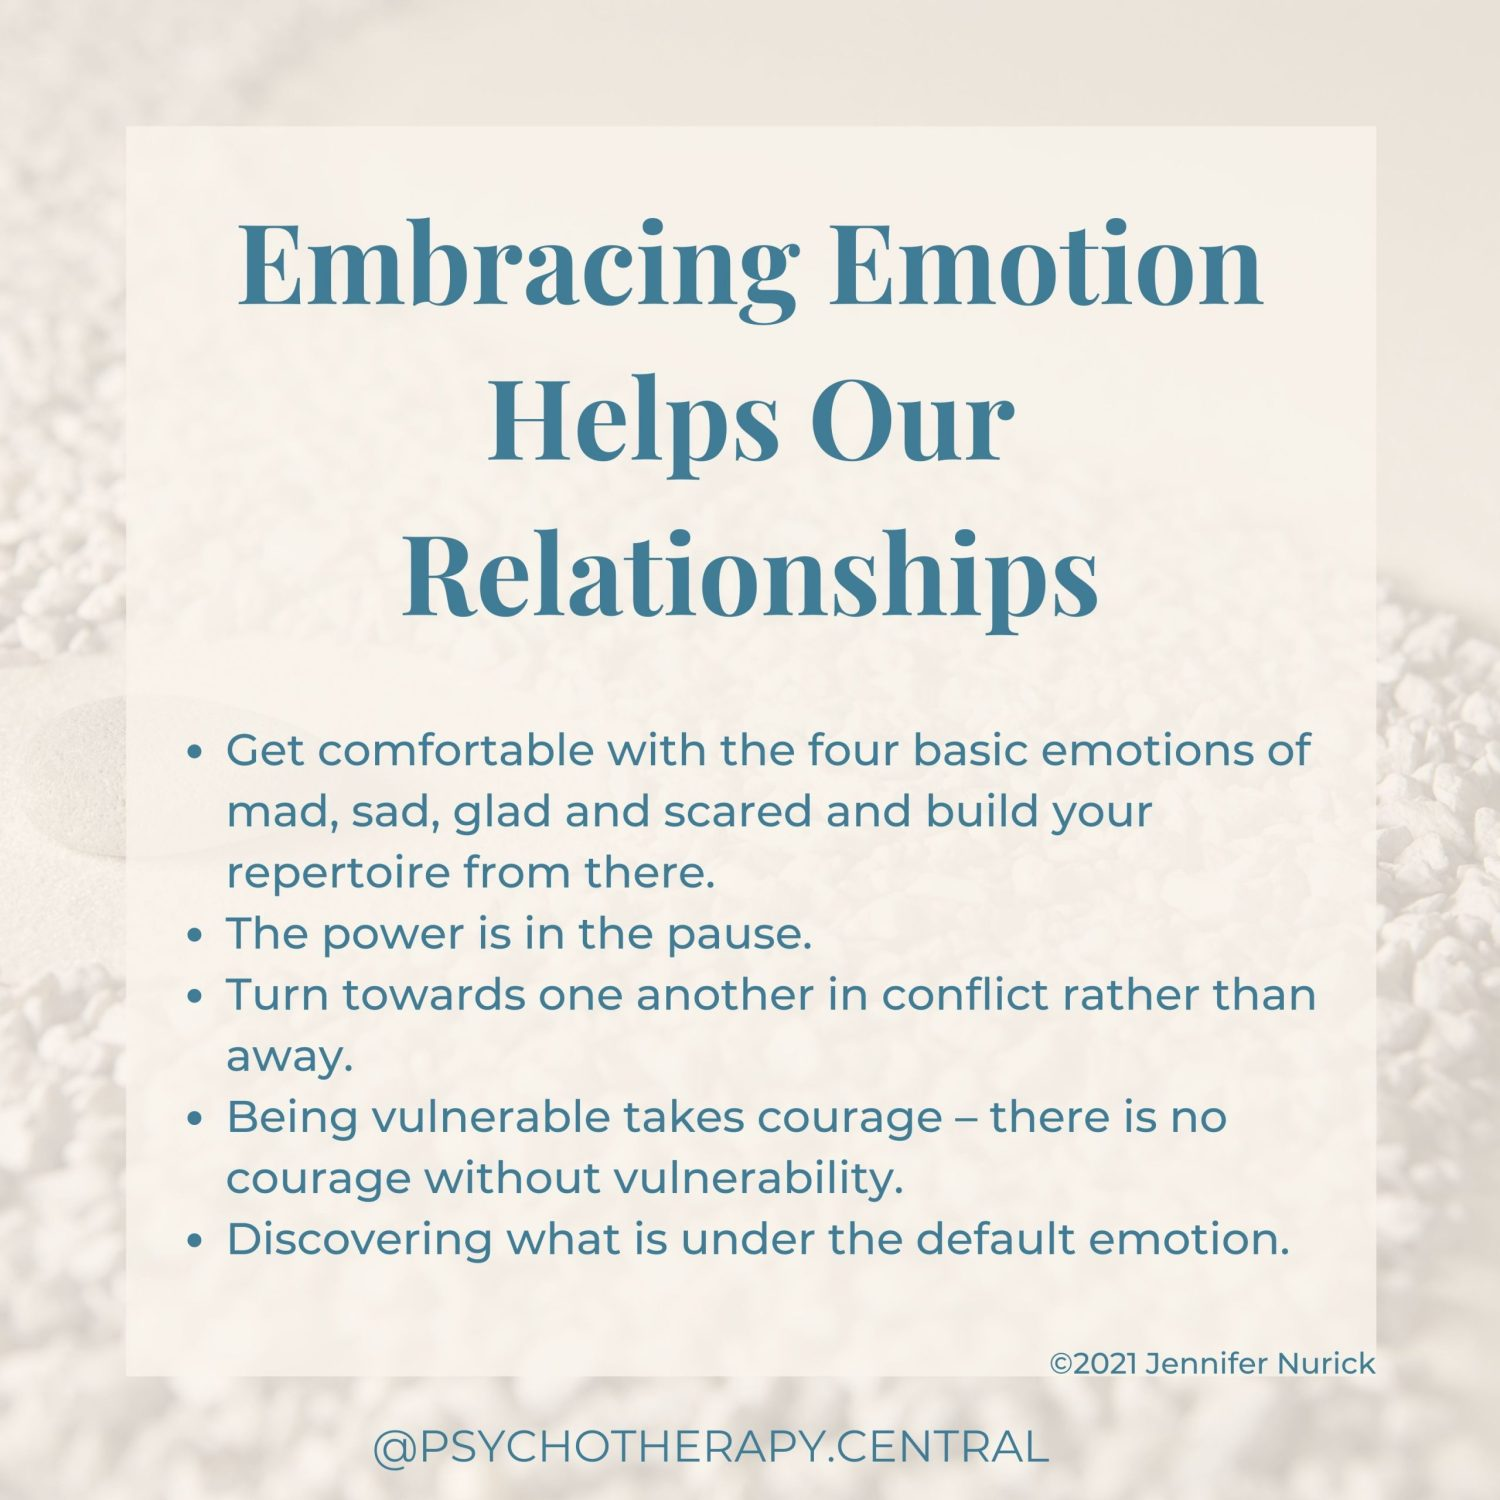 Embracing Emotion Helps Our Relationships Get comfortable with the four basic emotions of mad, sad, glad and scared and build your repertoire from there. The power is in the pause Turn towards one another in conflict rather than away Being vulnerable takes courage – courageous people are vulnerable Discovering what is under the default emotions